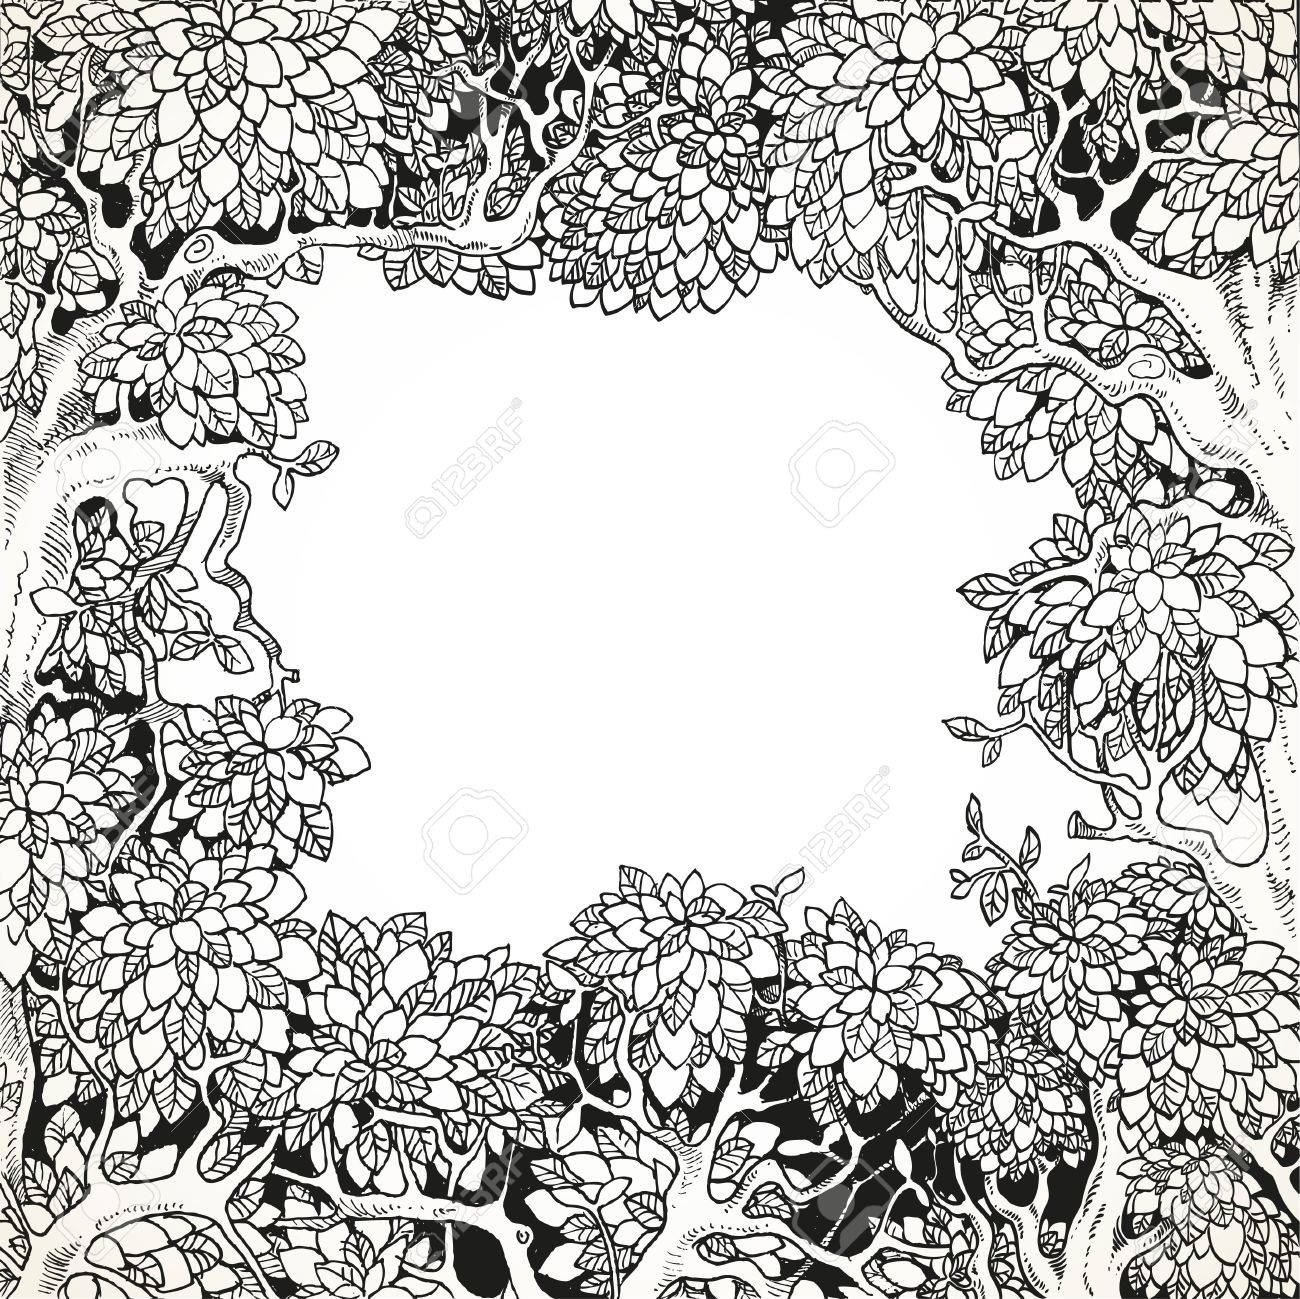 Frame for text decoration Enchanted Forest black and white - 52987054